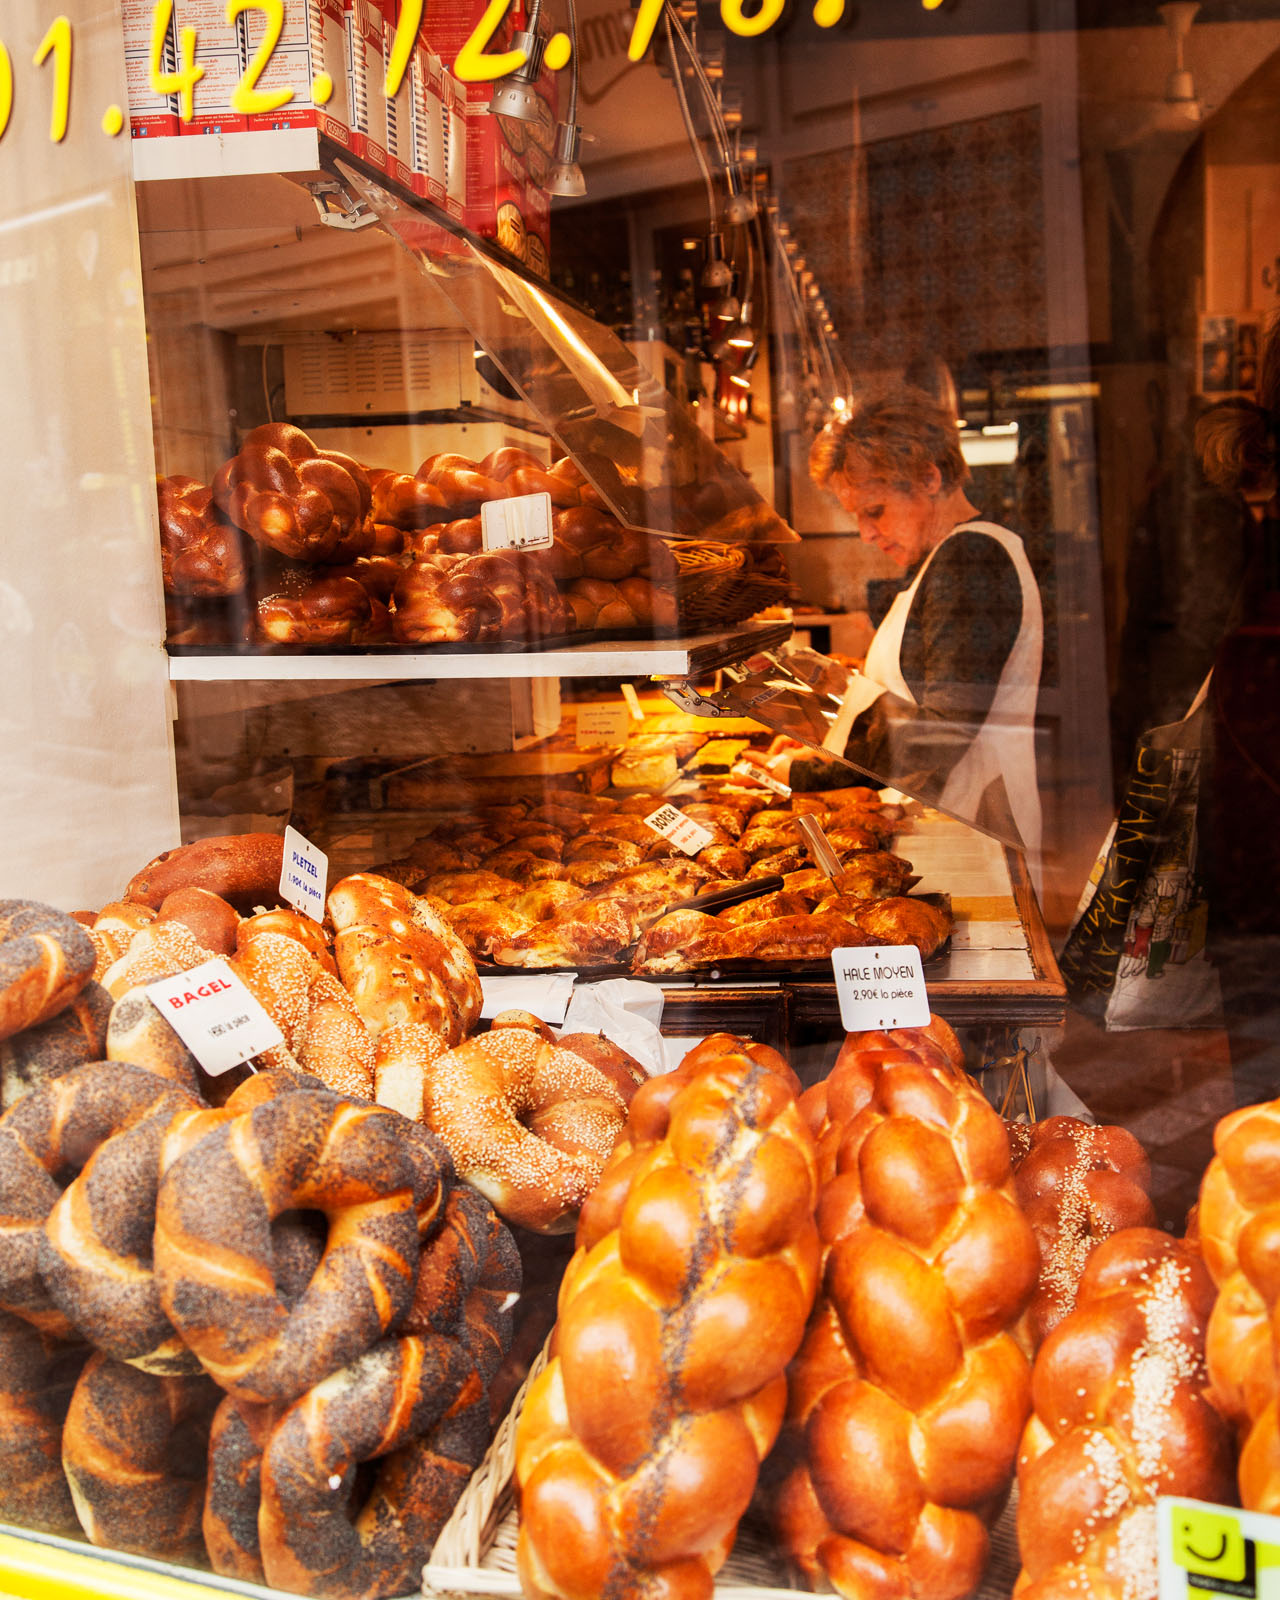 the old Jewish neighbourhood of the Marais is full of bakeries, delis and restaurants